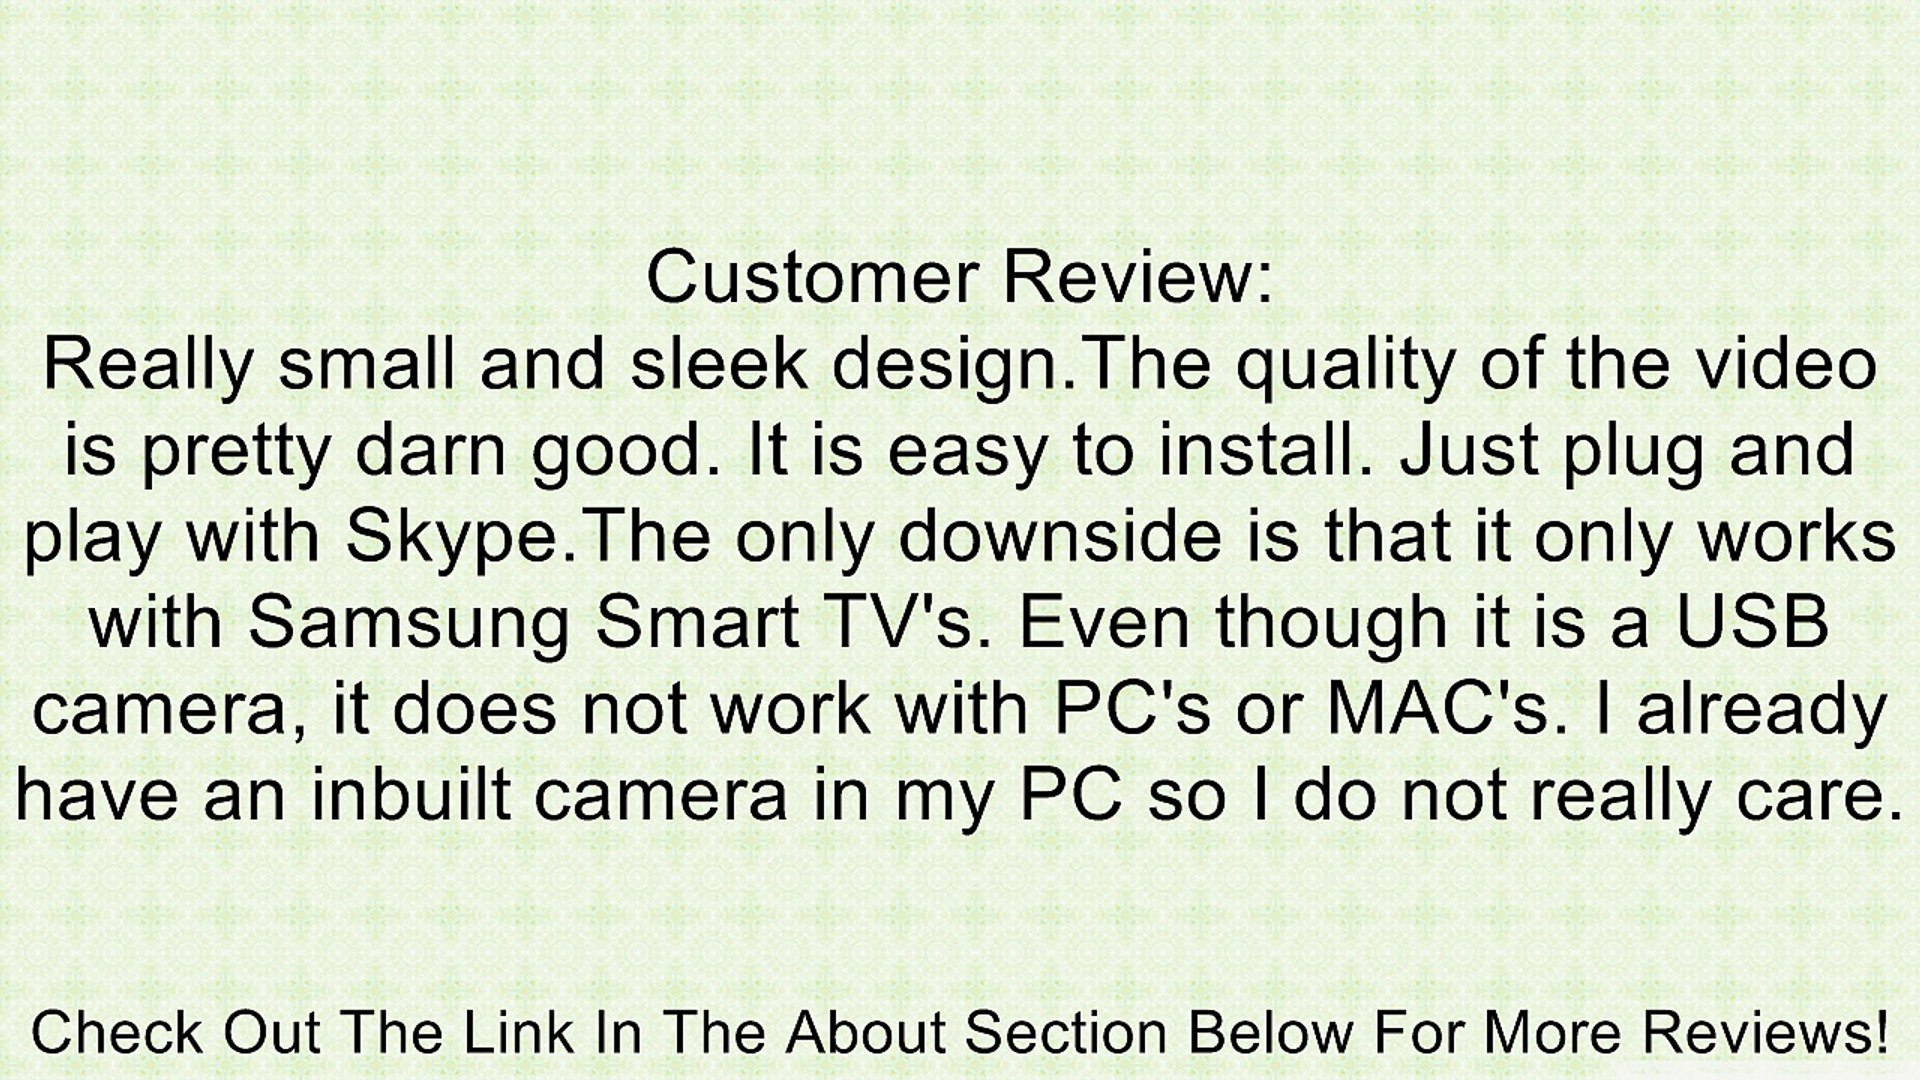 Samsung VG-STC2000 Skype TV Camera (Discontinued by Manufacturer) Review